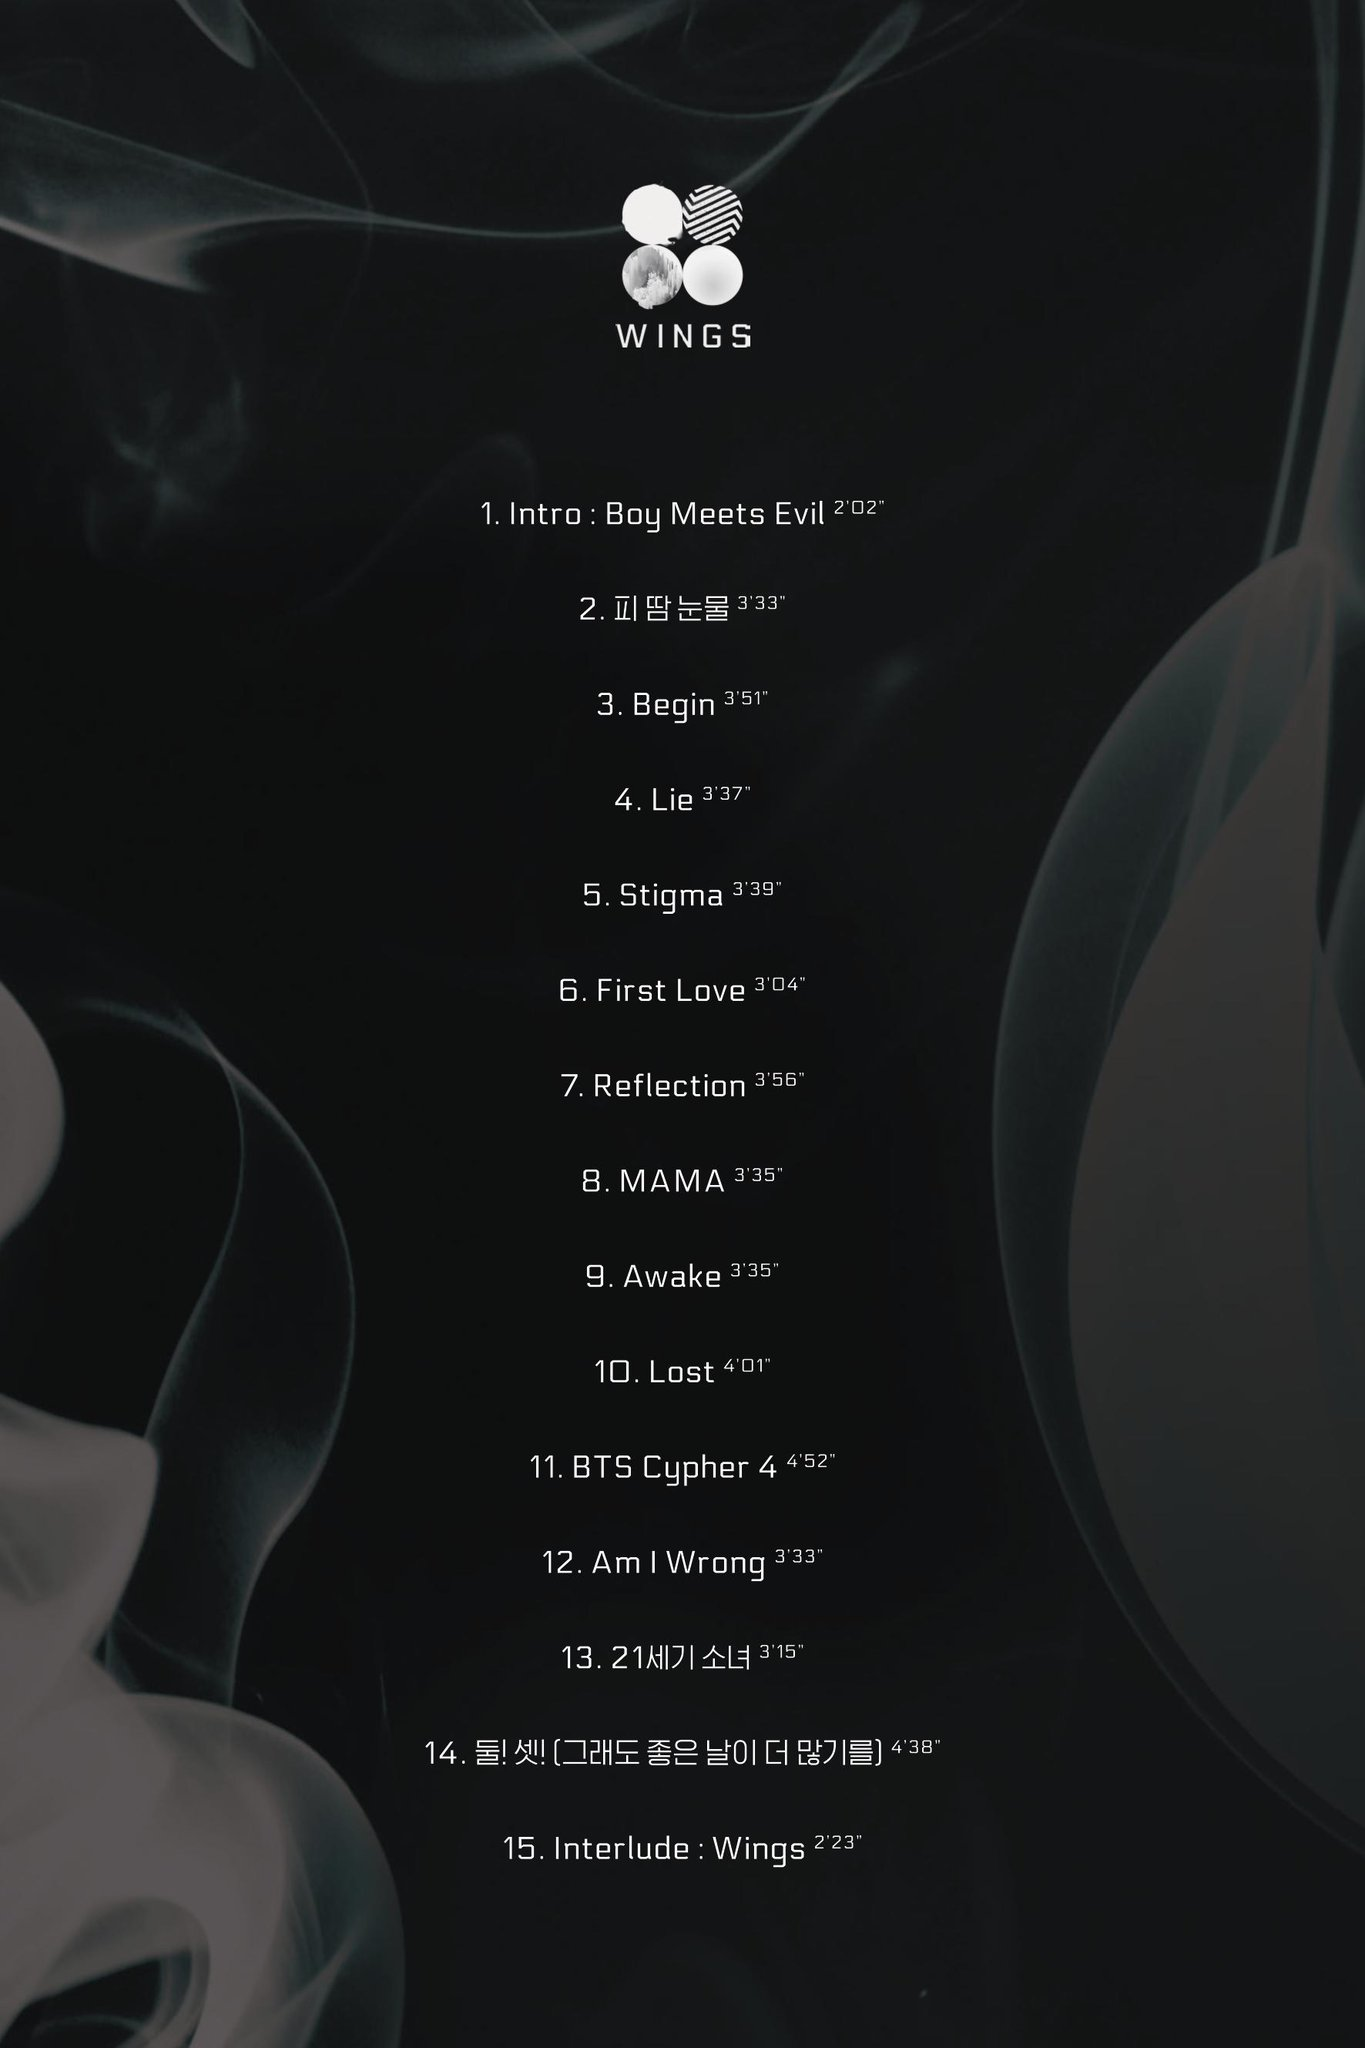 wings track list